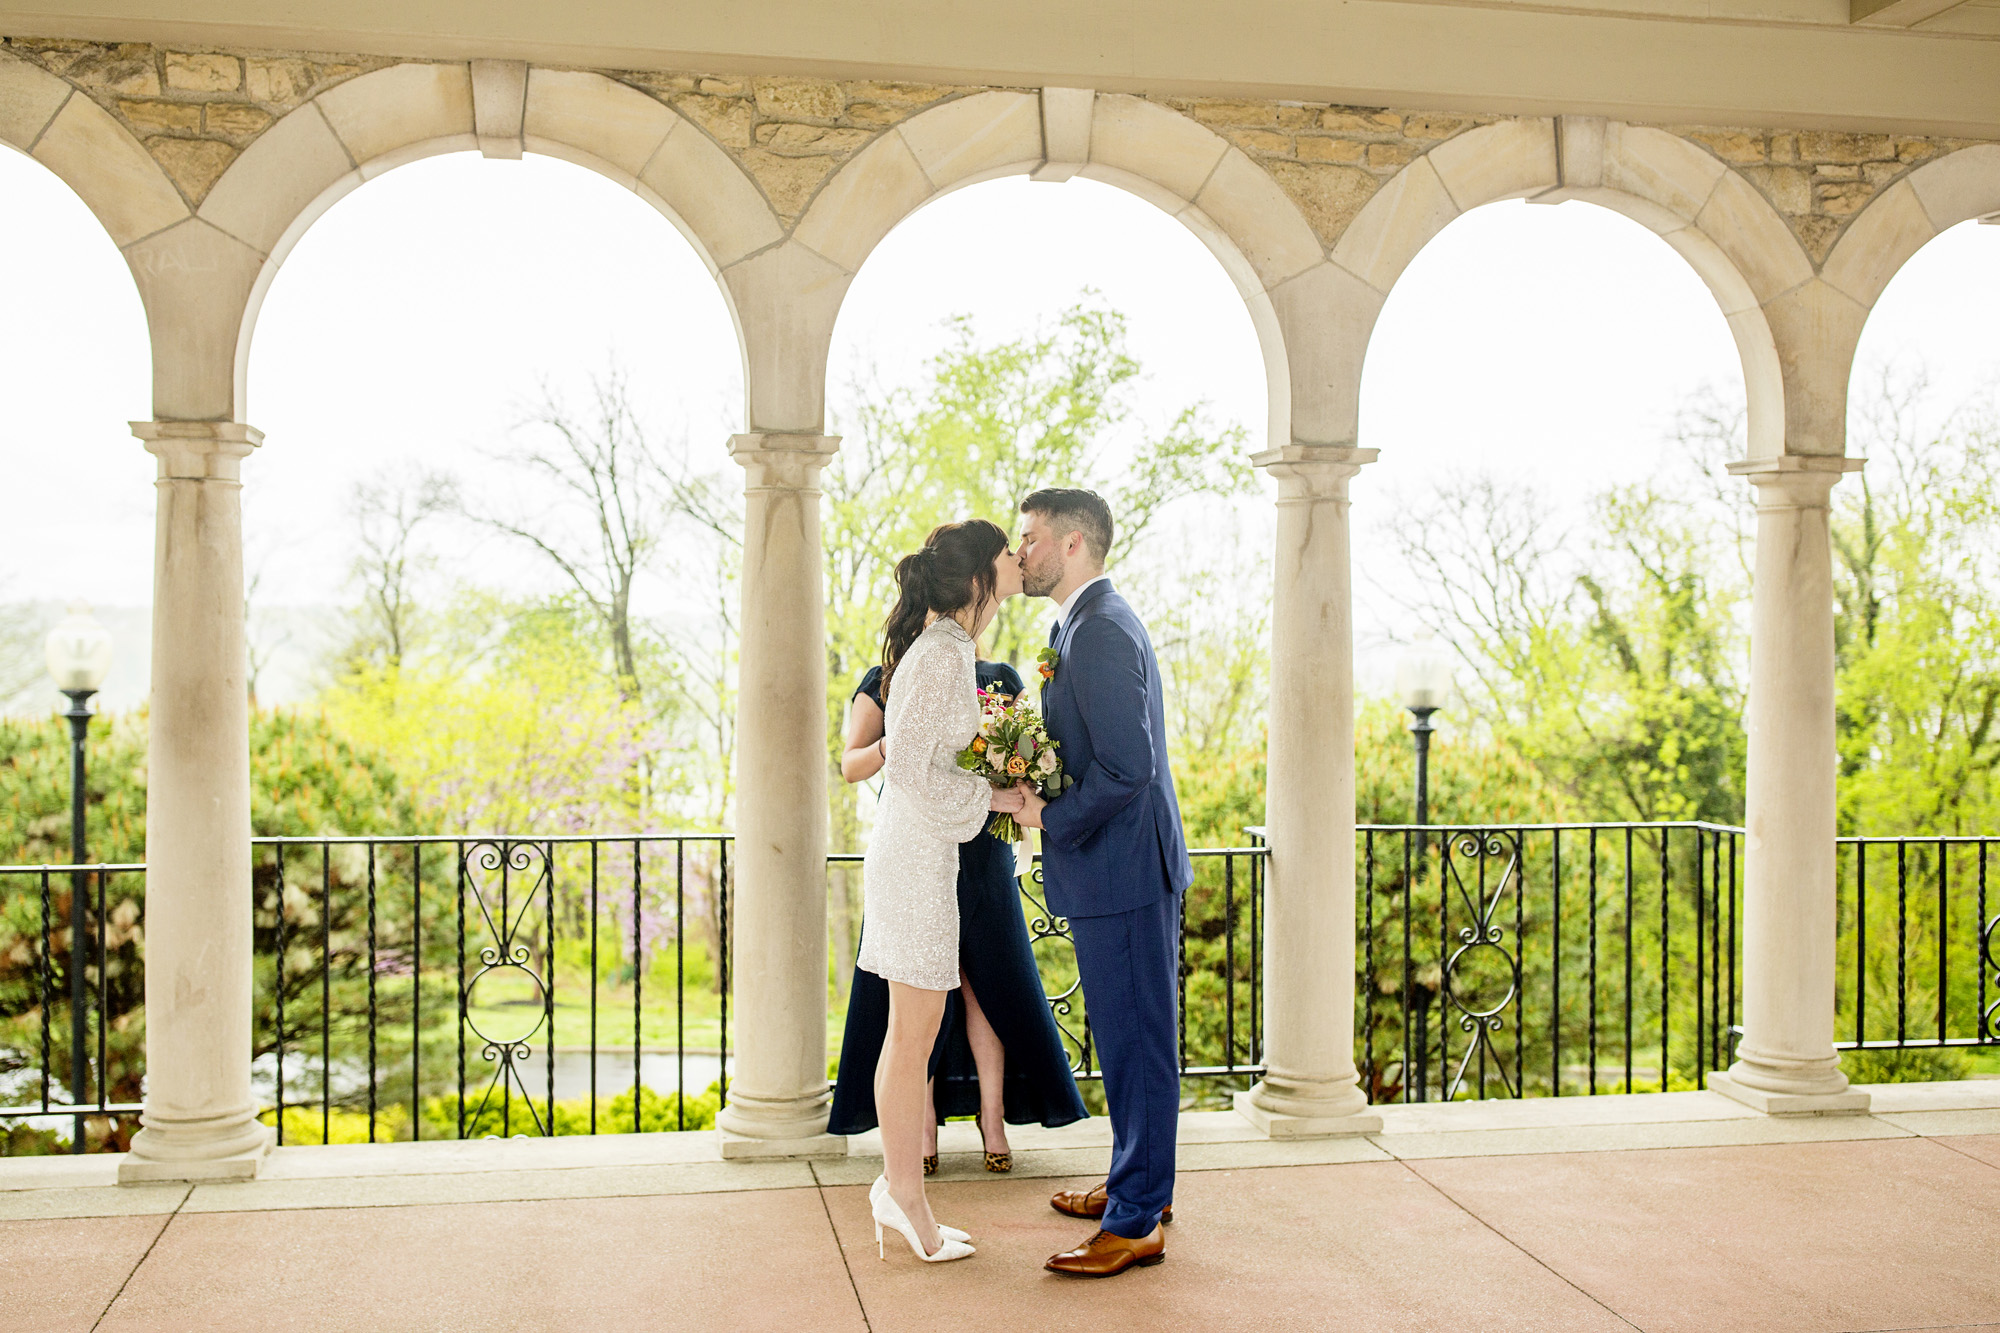 Seriously_Sabrina_Photography_Cincinnati_Ohio_Alms_Park_Elopement_Lauren_Aaron_27.jpg